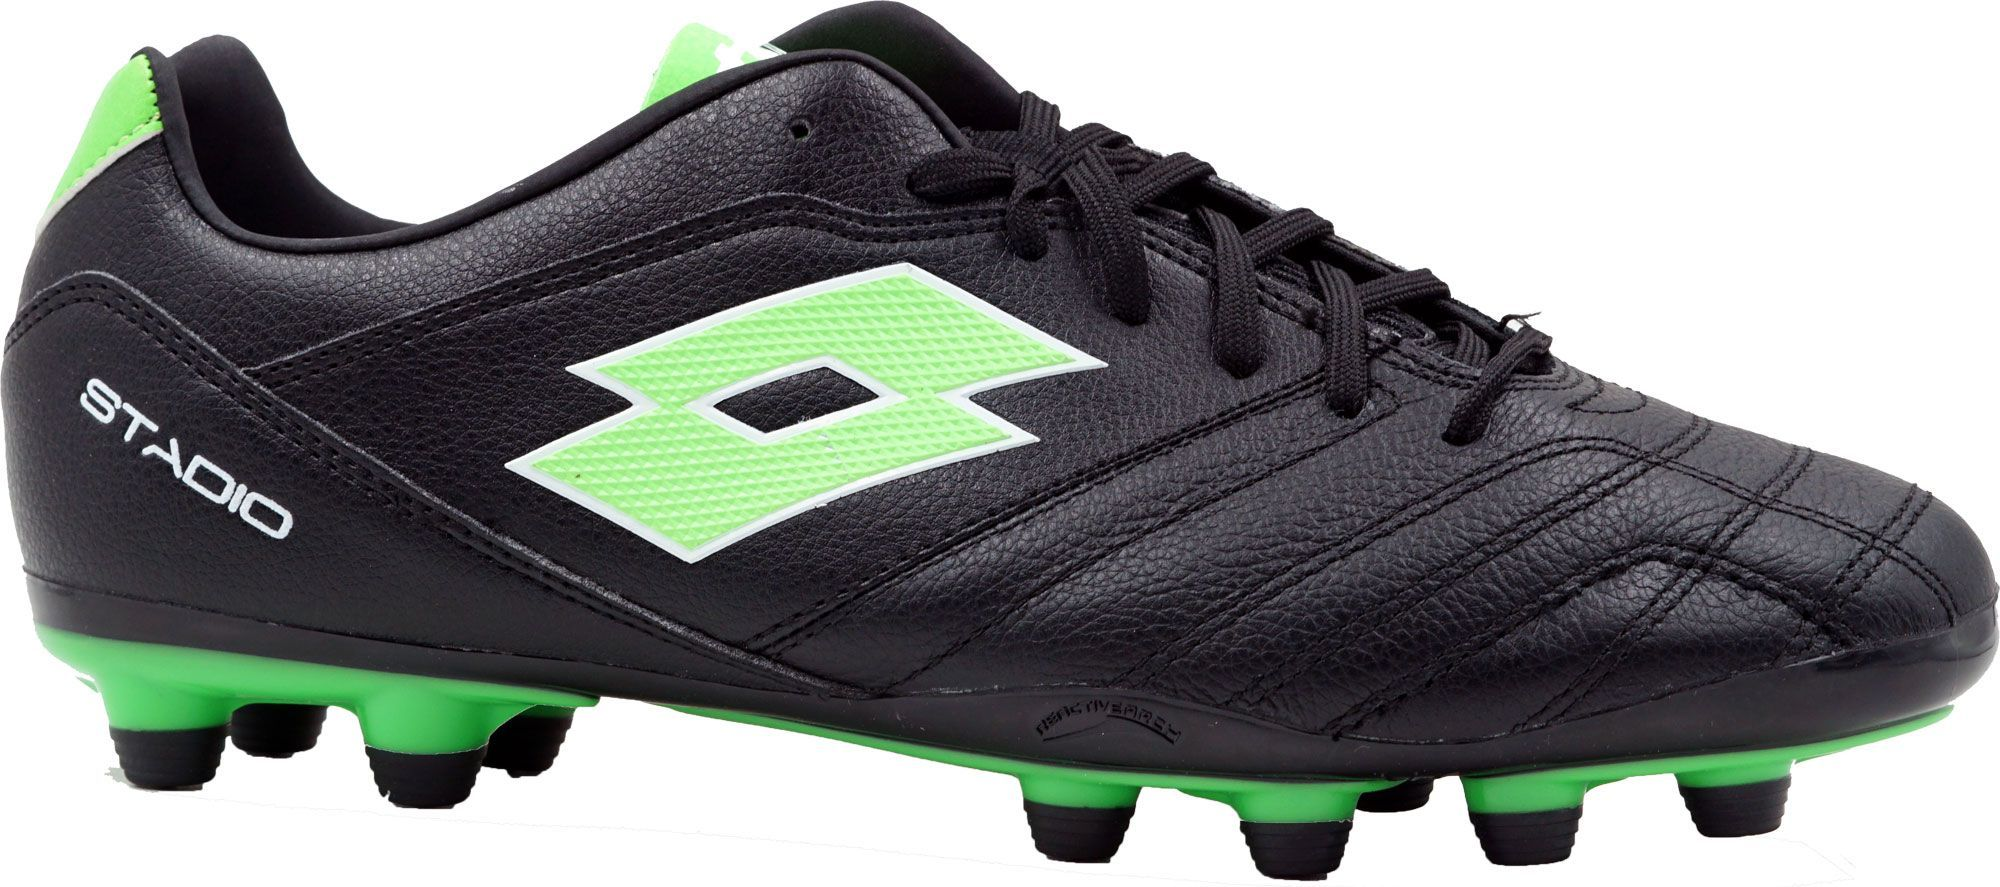 new concept 02650 eef3a Lotto Stadio Primato K Review   Lotto Soccer Cleats   Adidas sneakers, Soccer  Cleats, Soccer